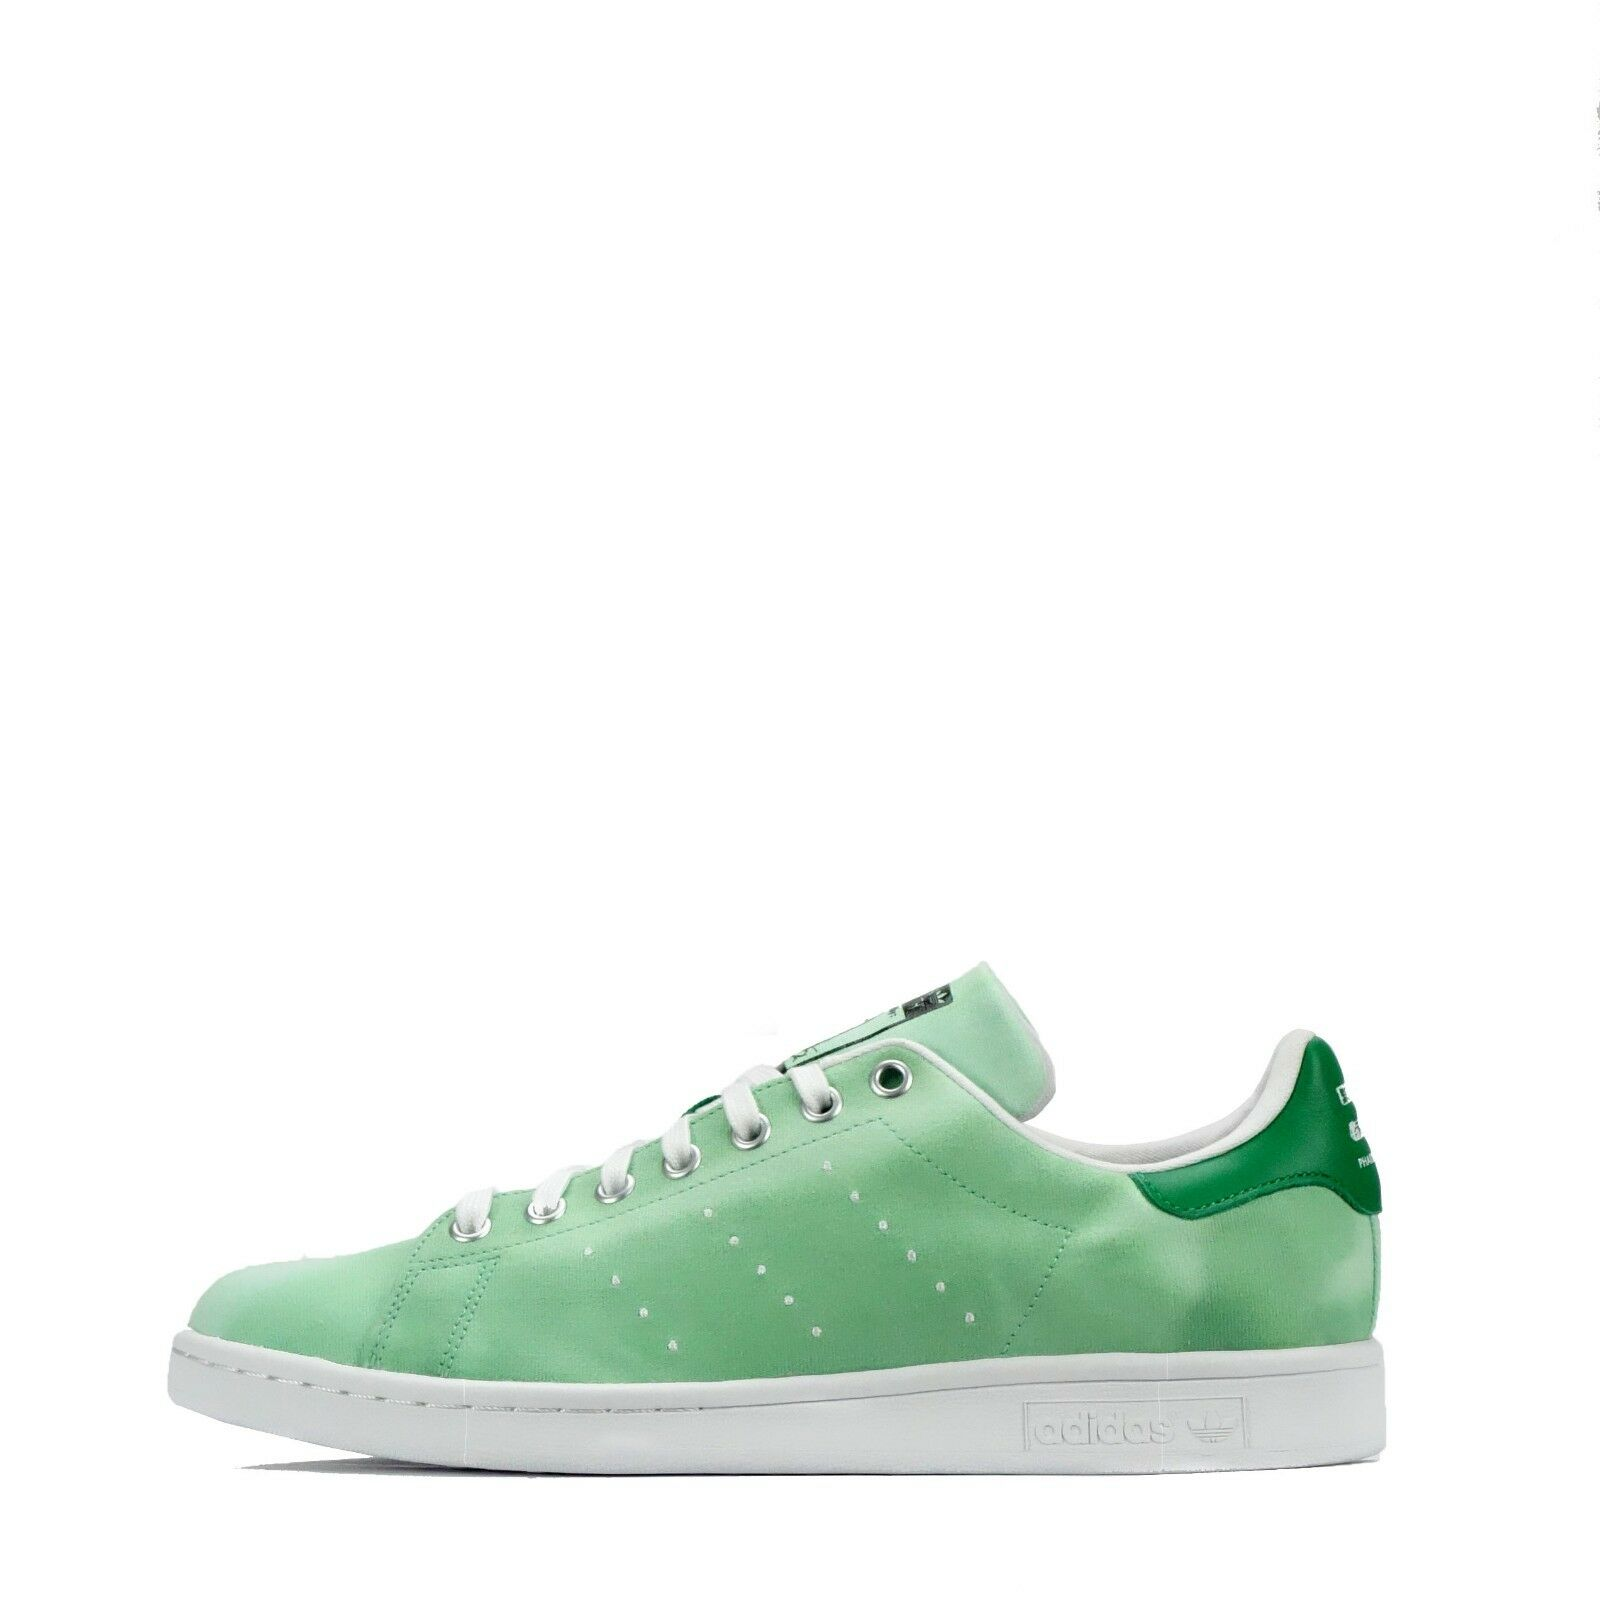 ADIDAS Originals Pharrell Williams HU Holi Stan Smith Scarpe da ginnastica Uomo Verde